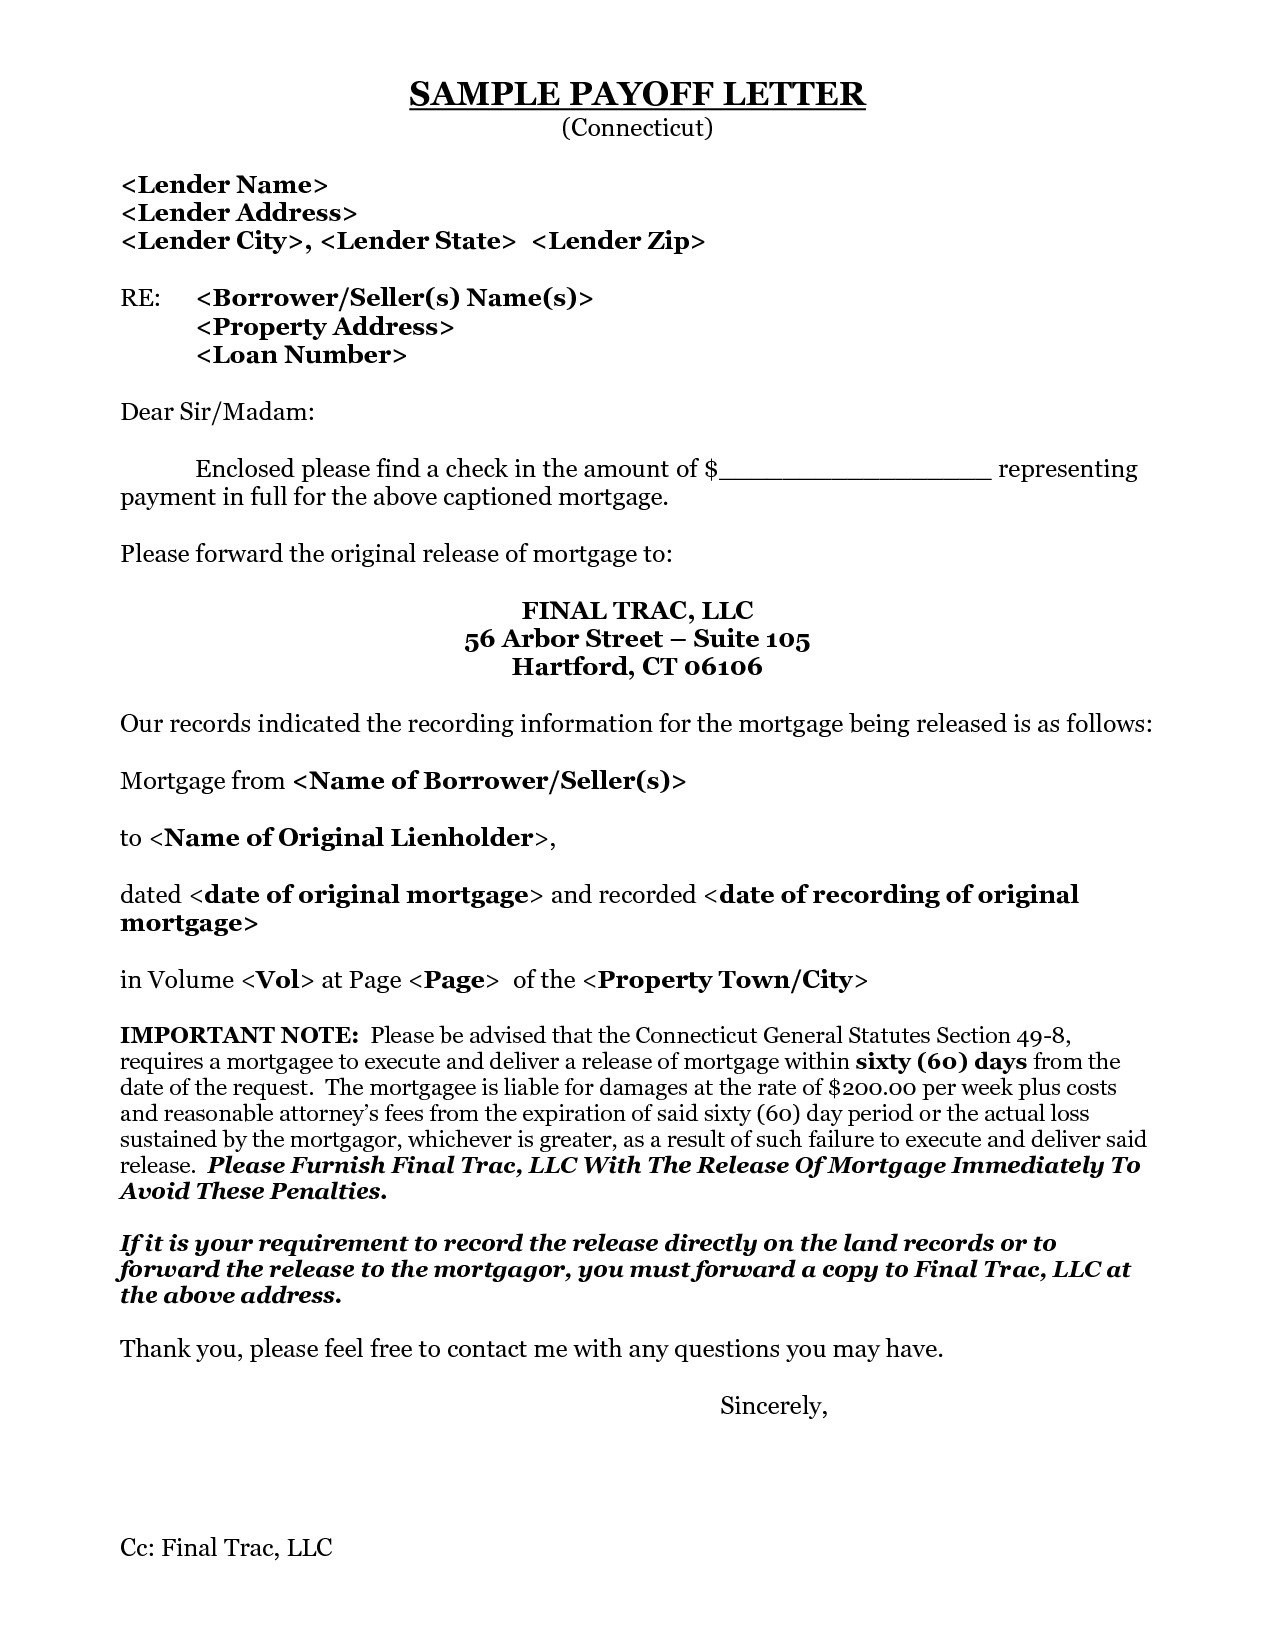 mortgage loan payoff letter template example-Inspiration 9 Best Sample Loan Payoff Letter form Loan Payoff New 8 Payoff Statement Template 13-i